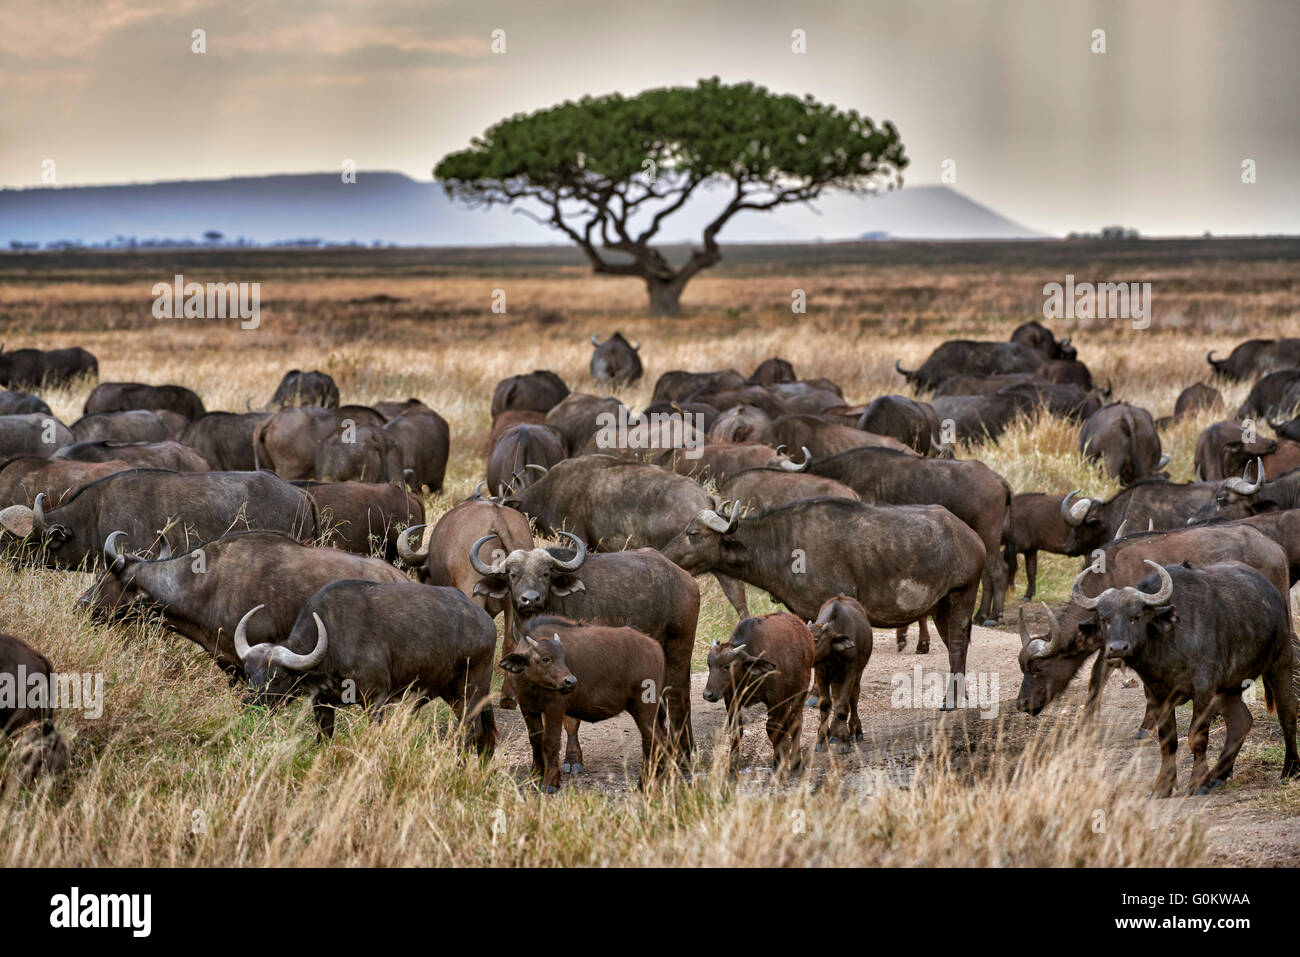 herd of African buffalos (Syncerus caffer) at sunset in Serengeti National Park, UNESCO world heritage site, Tanzania Stock Photo